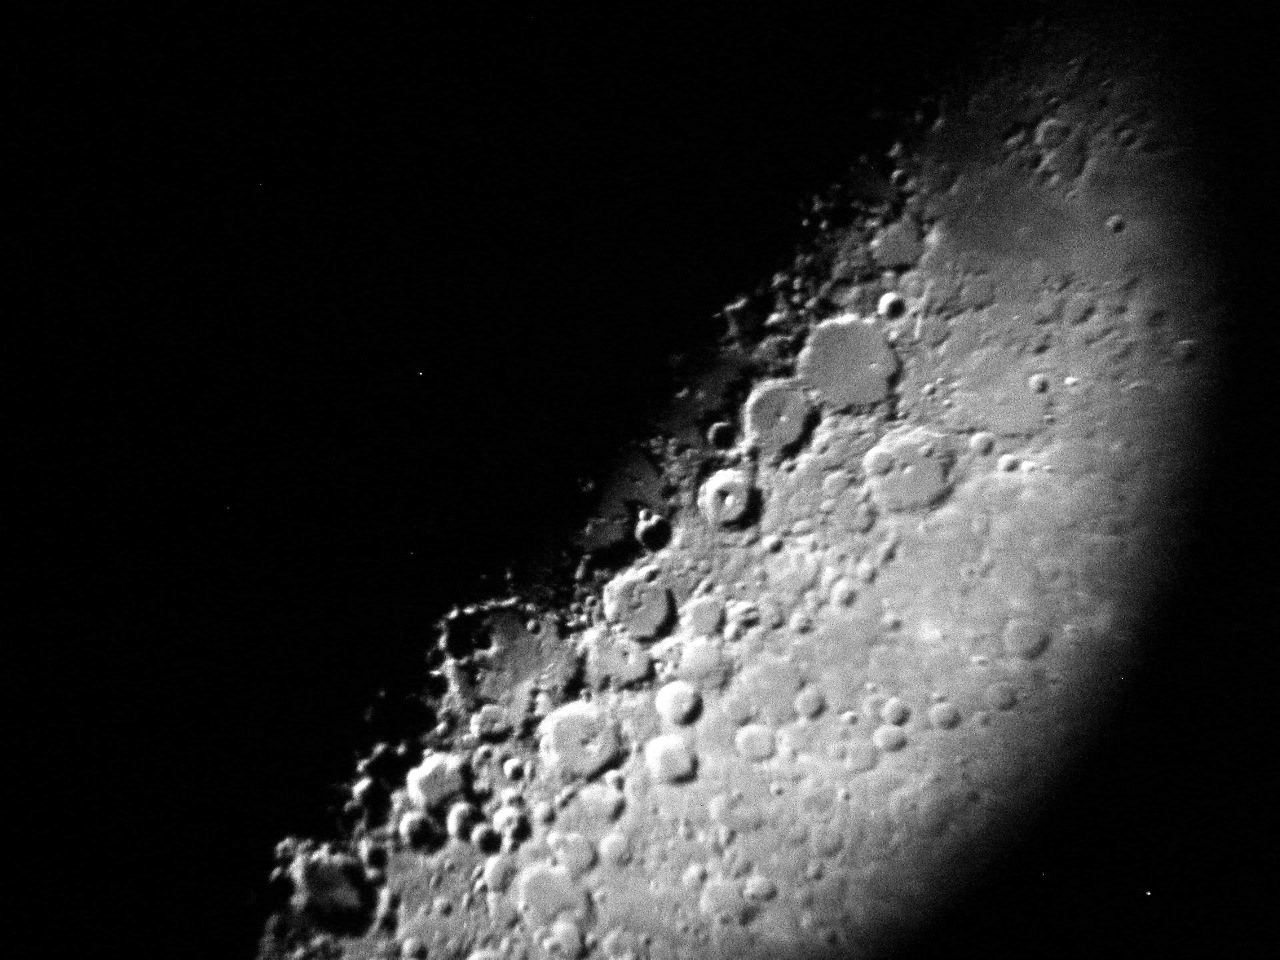 This shot is from a few nights previous to the last one. Now the backward comma formed by Ptolemaeus, Alphonsus, and Arzachel is right on the terminator, just slightly above and right of center.